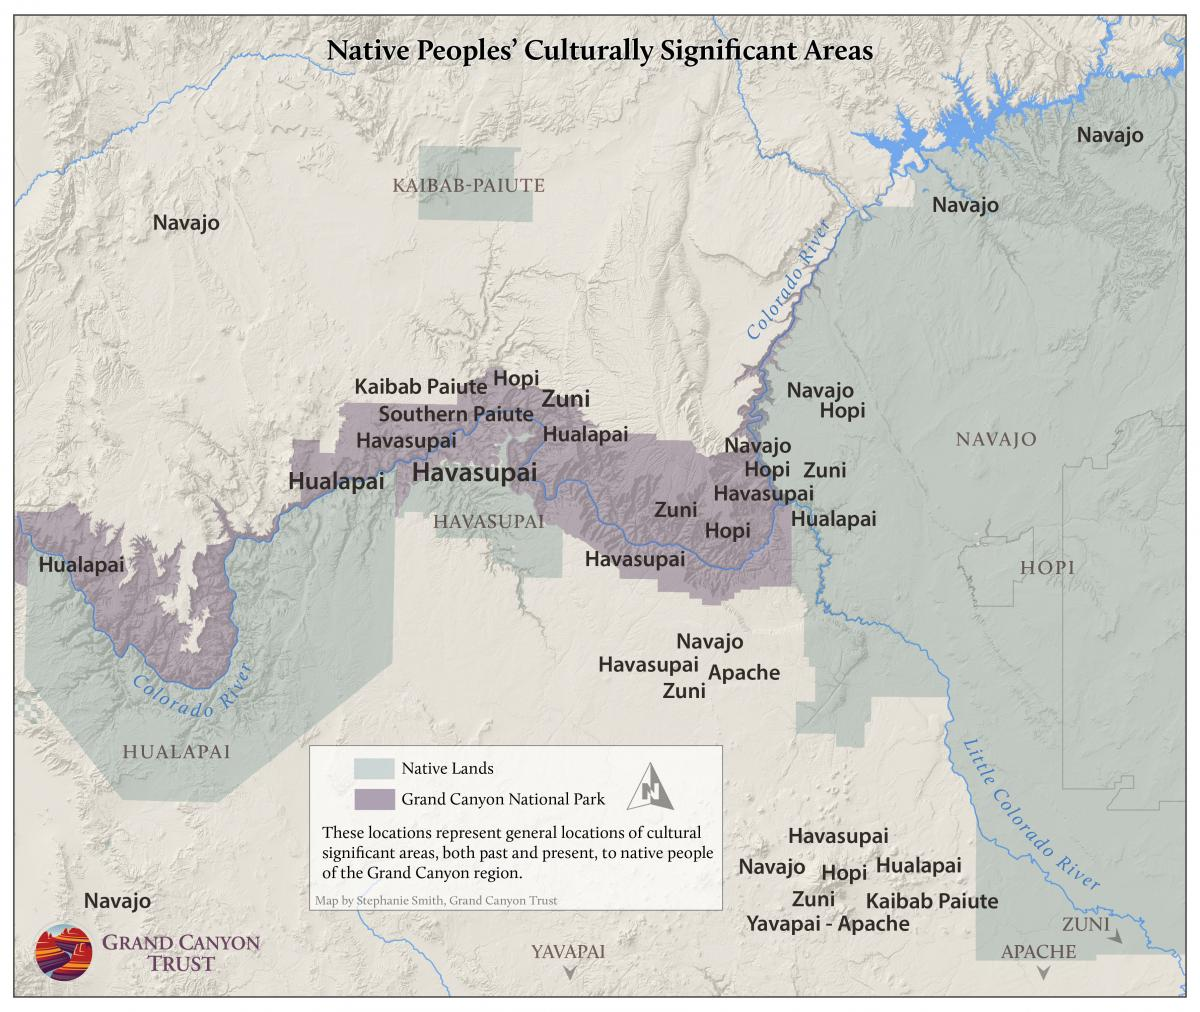 Culturally significant areas to Native Peoples' of the Grand Canyon region